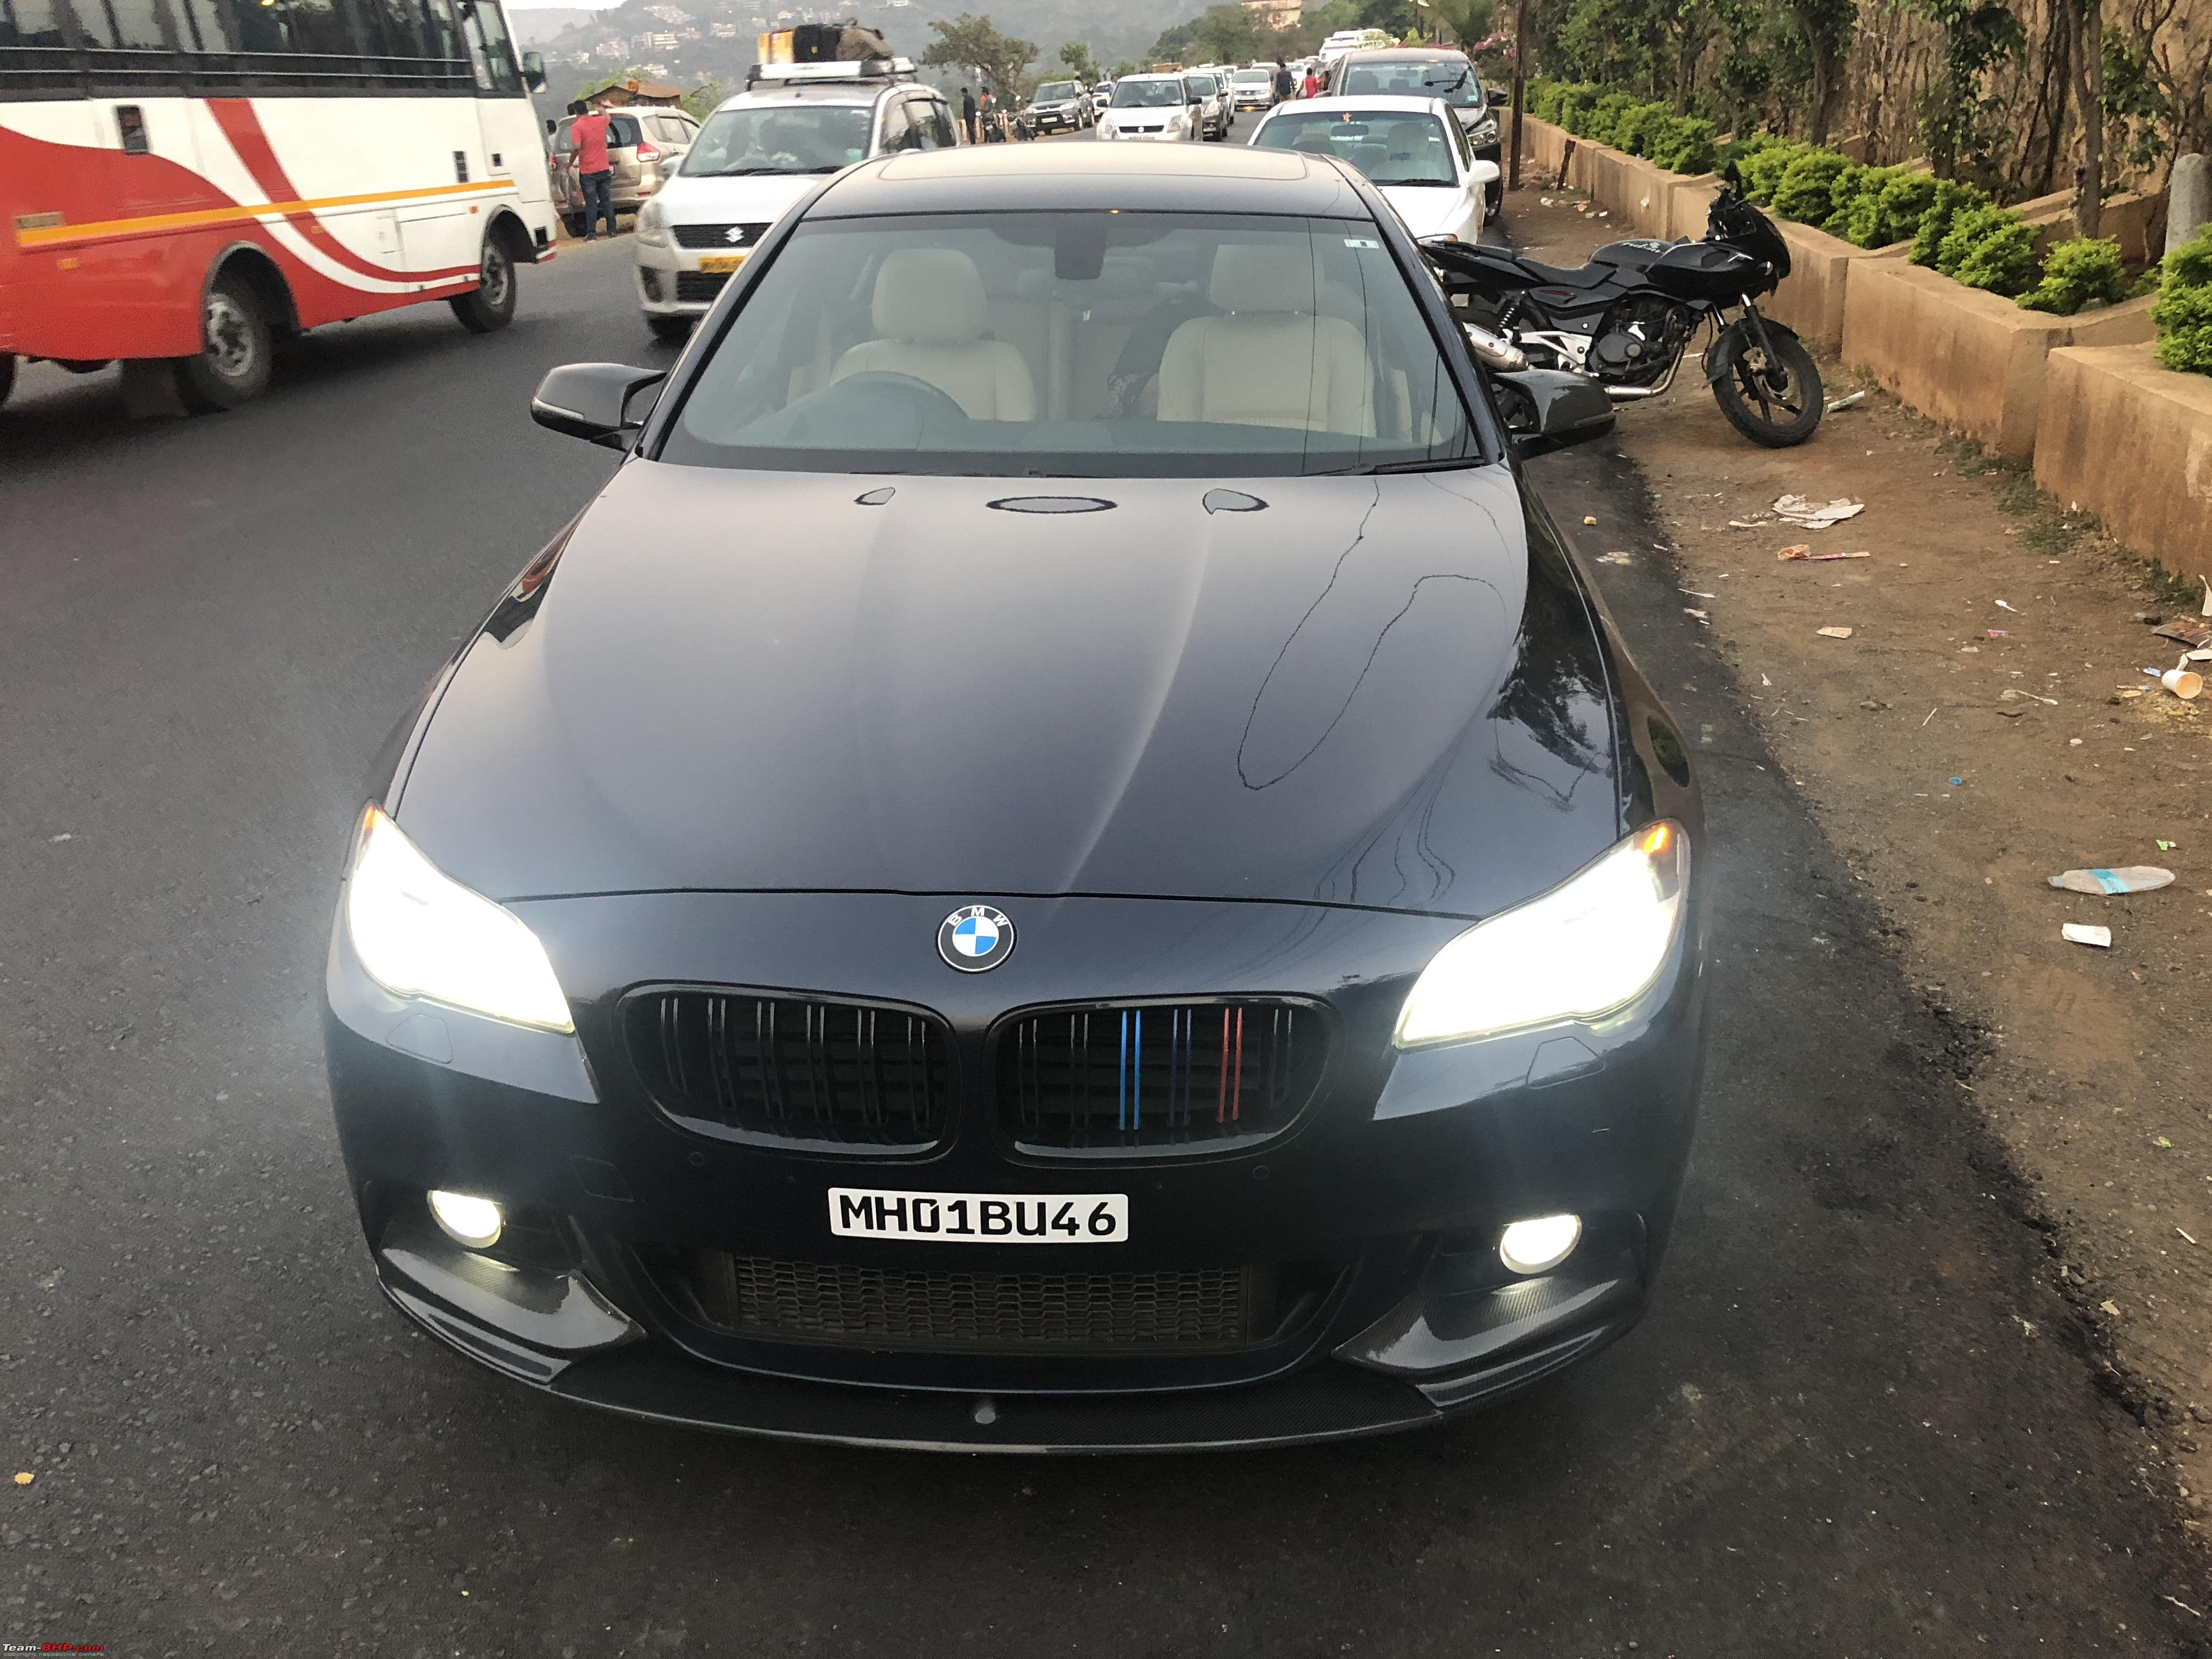 My Pre-worshipped Monster : BMW 530d M-Sport [F10] - Now